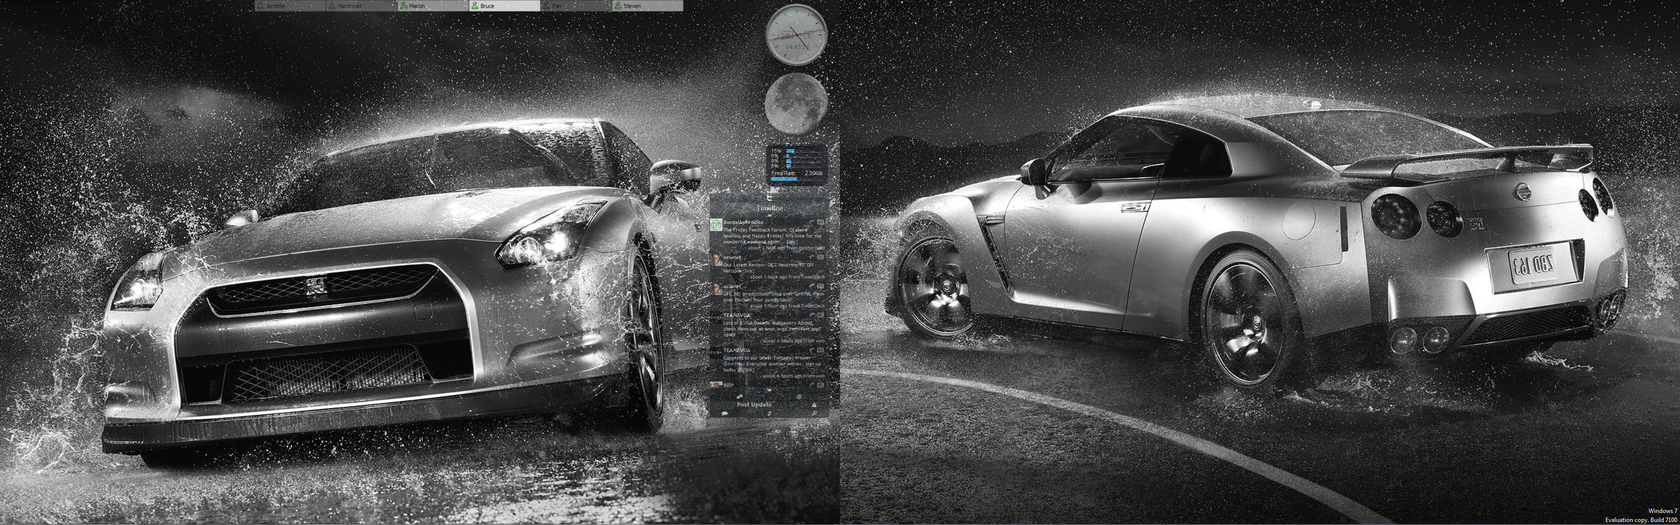 GT-R Desktop #5 optimized.png